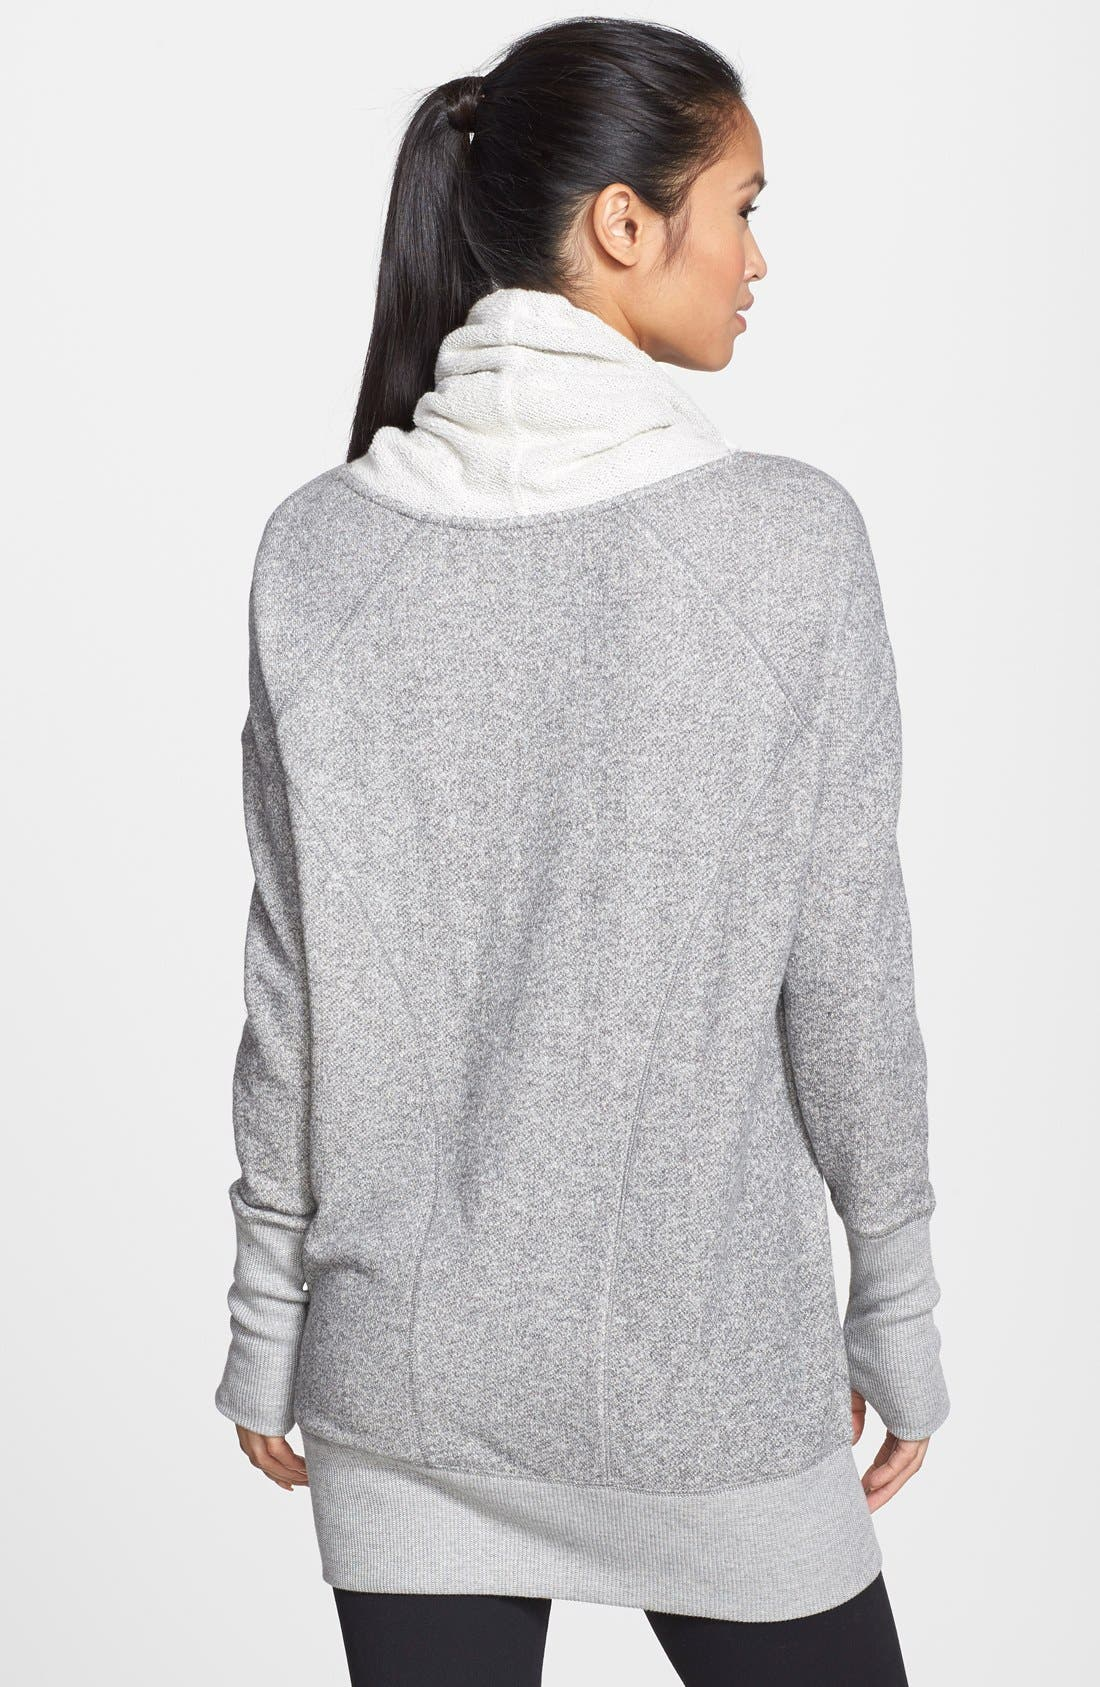 'Serenity' French Terry Sweatshirt,                             Alternate thumbnail 2, color,                             Grey Monument Heather